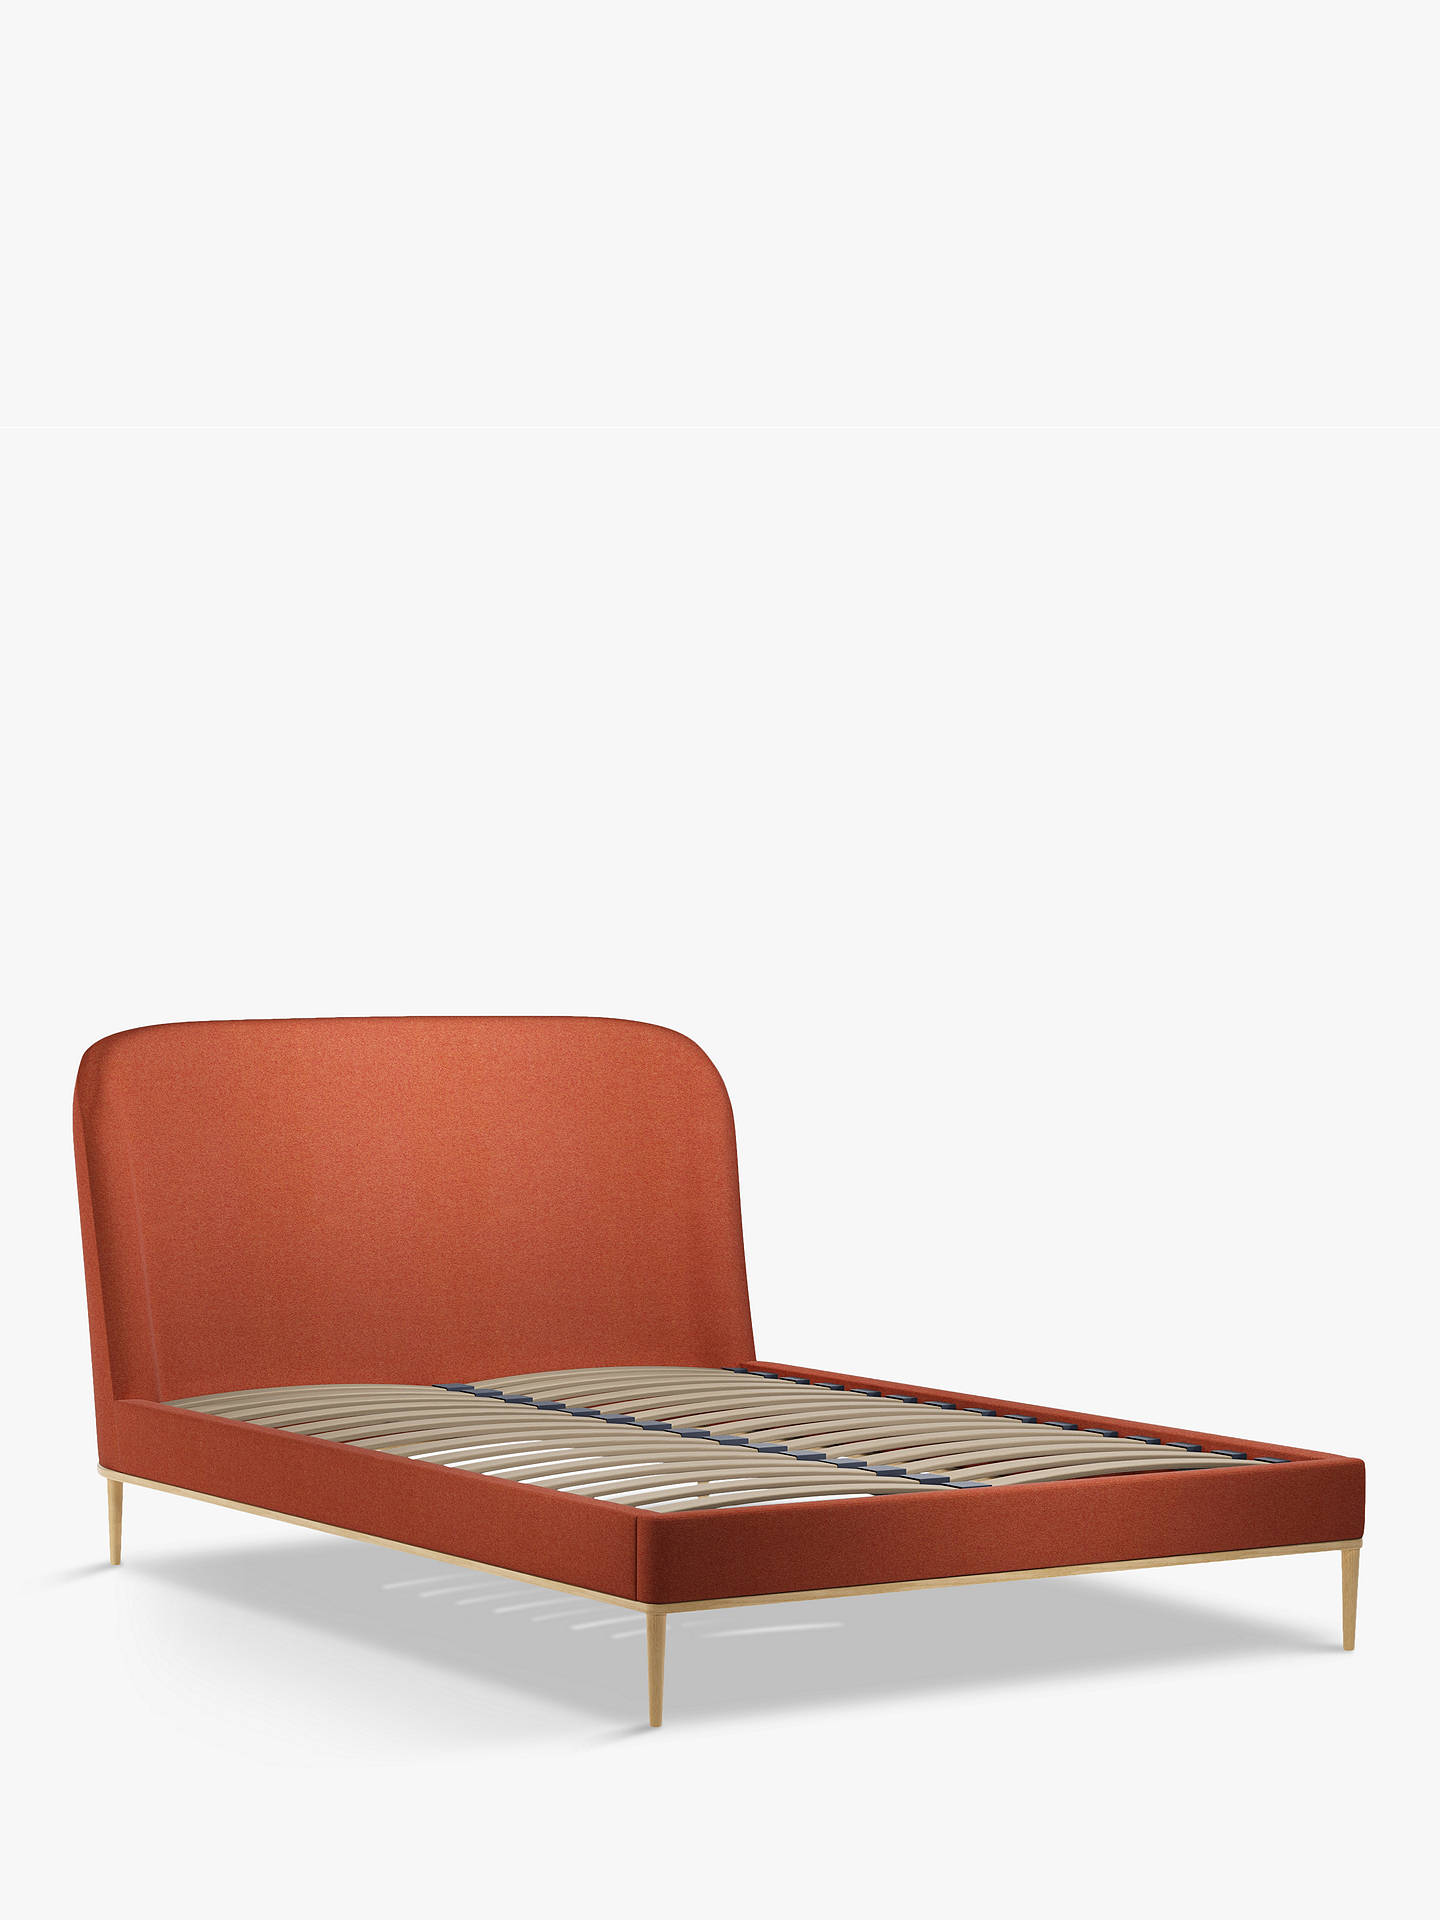 Buy John Lewis & Partners Show-Wood Upholstered Bed Frame, Double, Marylamb Terracotta Online at johnlewis.com